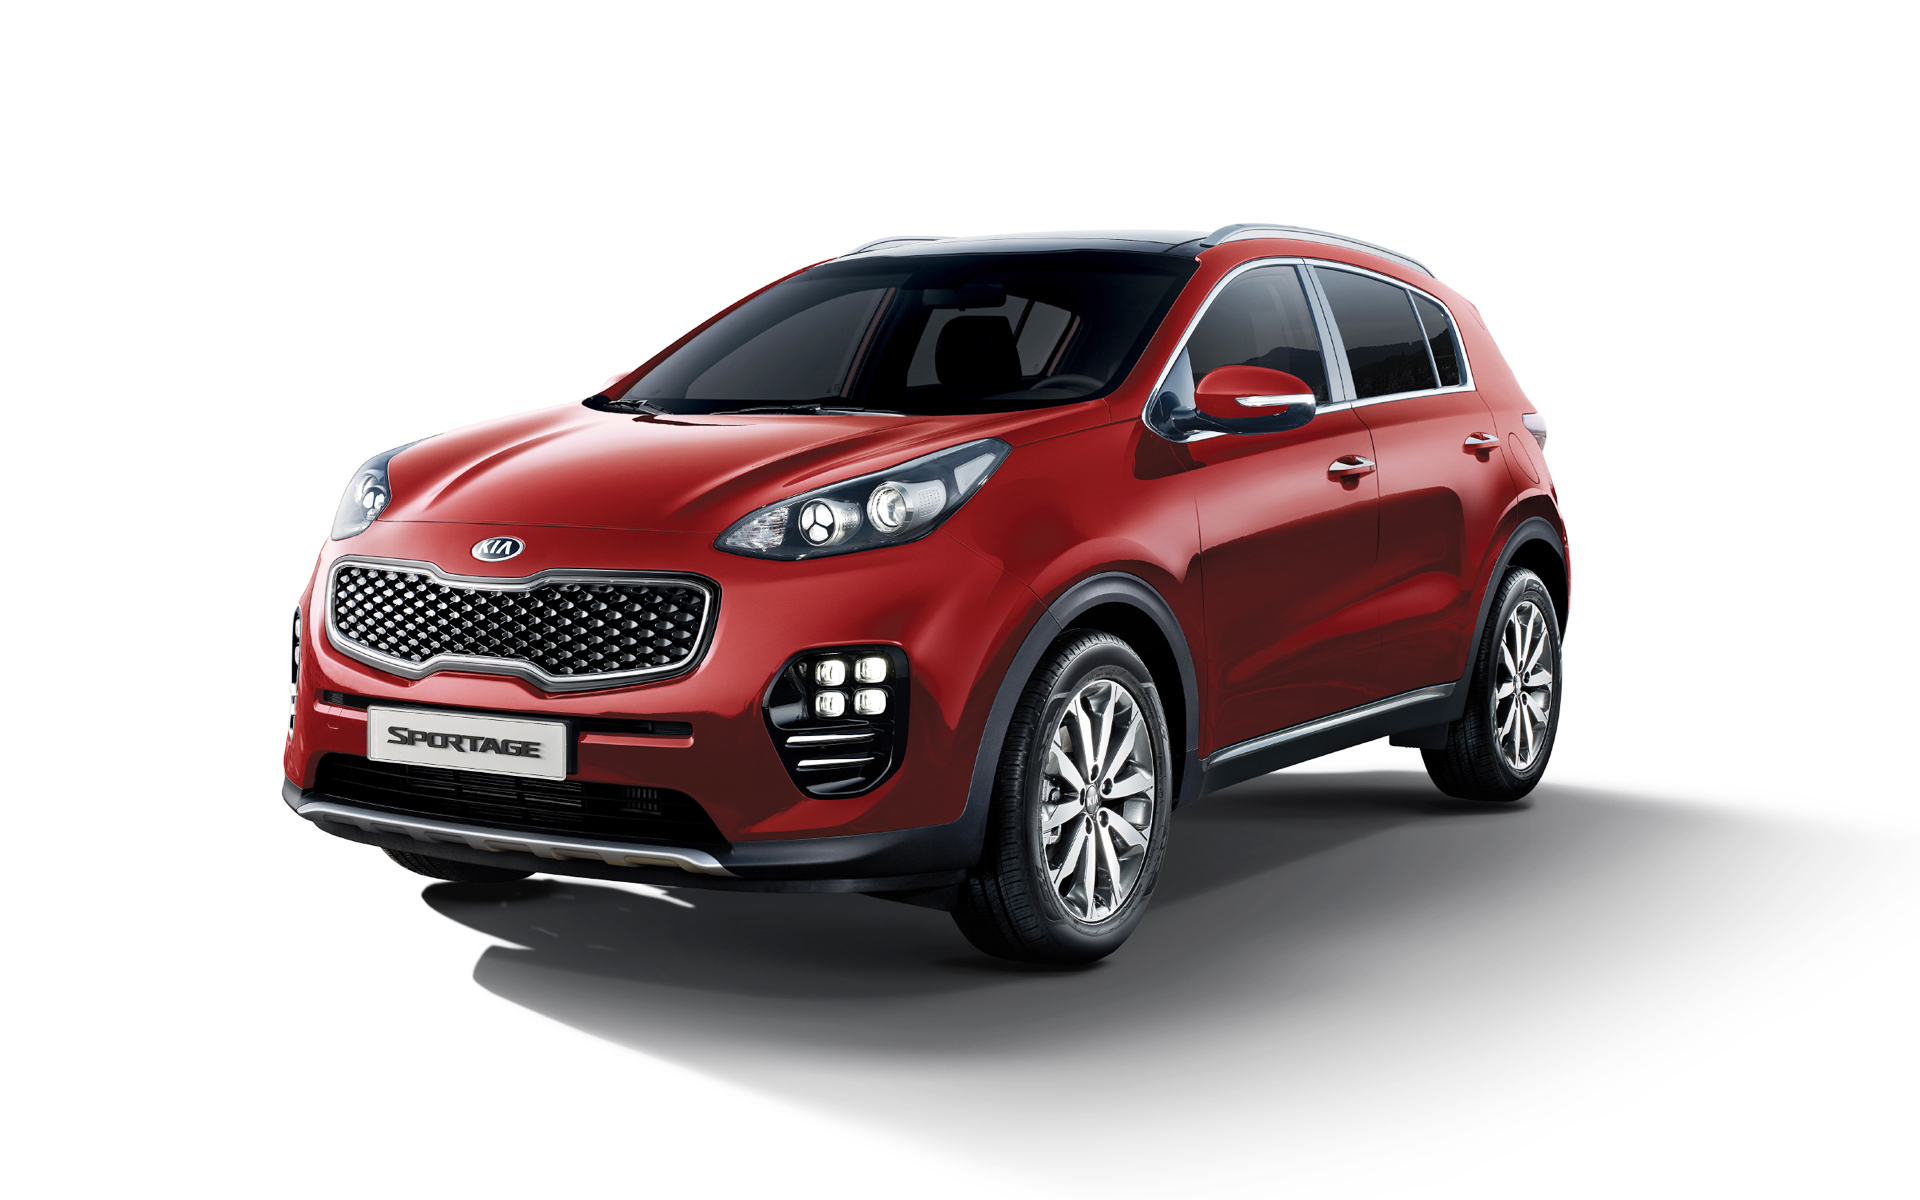 kia sportage 1 7 crdi launched in south korea the korean car blog. Black Bedroom Furniture Sets. Home Design Ideas